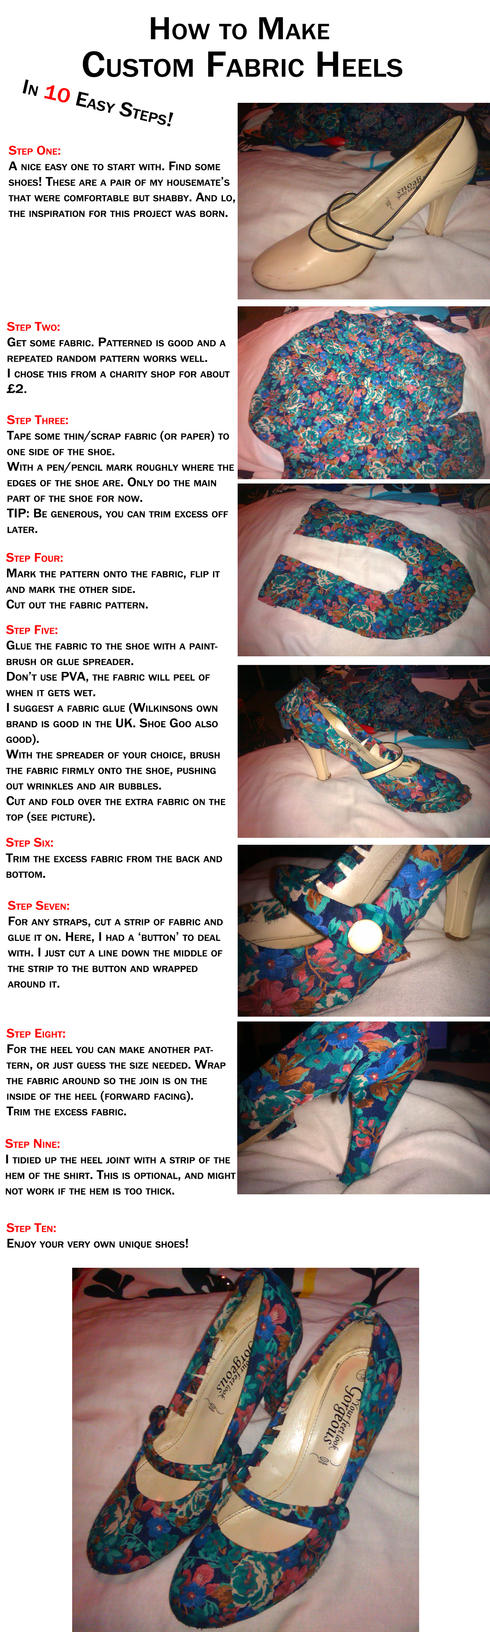 How to Make: Custom Fabric Heels by GAME-OVER-CUSTOM